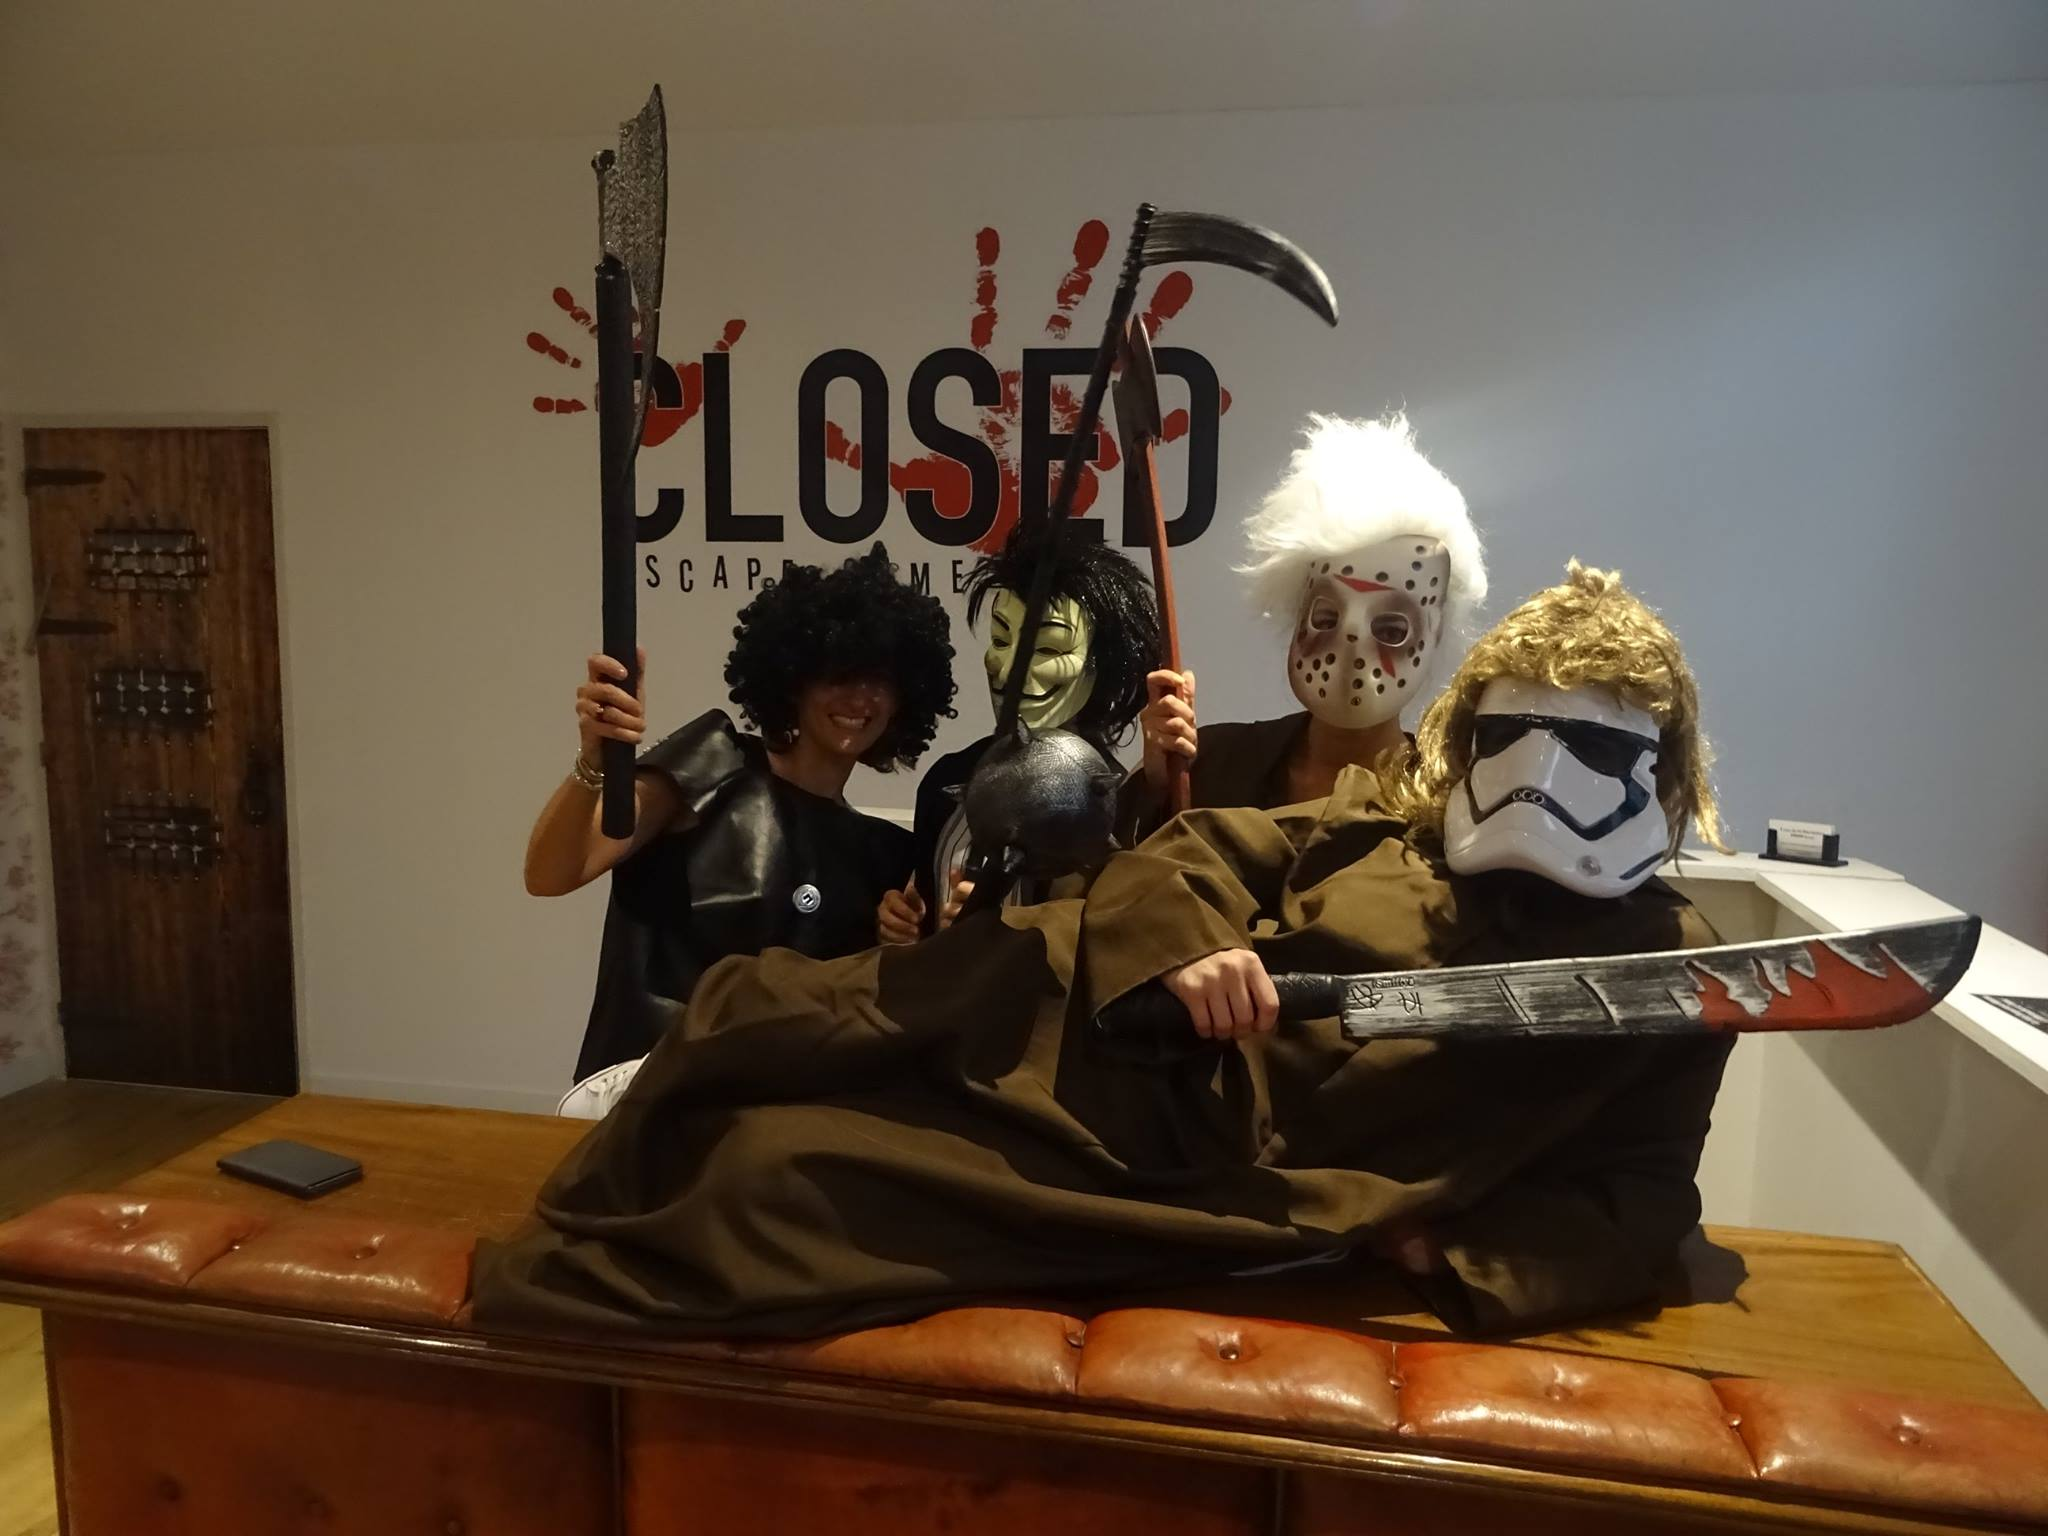 Pourquoi la franchise Closed Escape Game ?